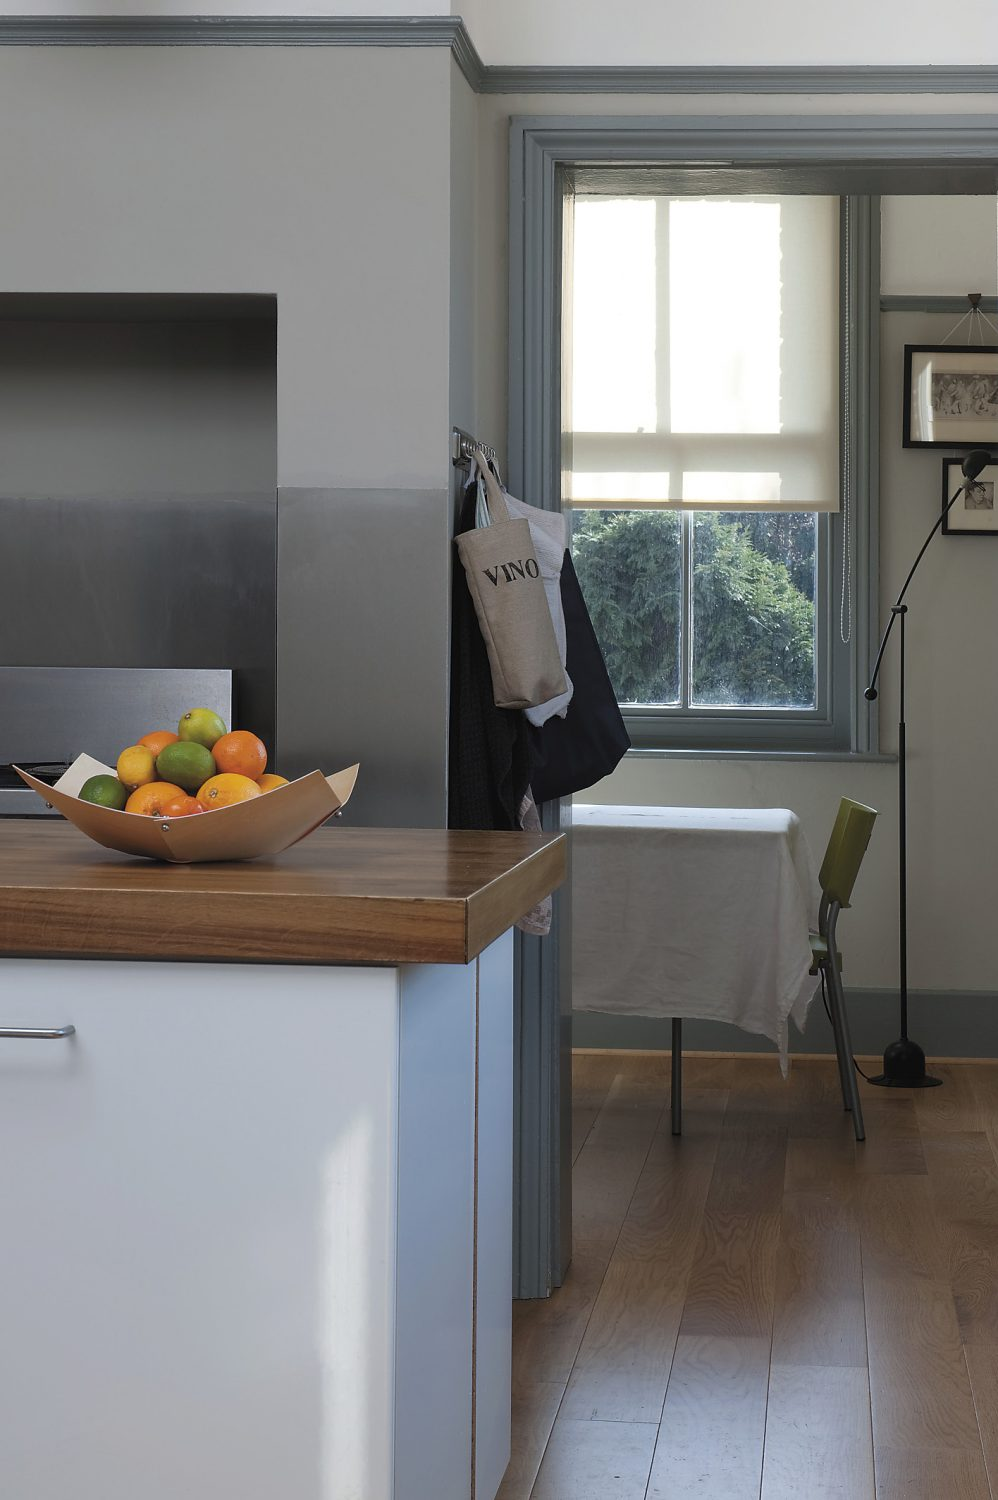 the kitchen units are made up of professional catering equipment